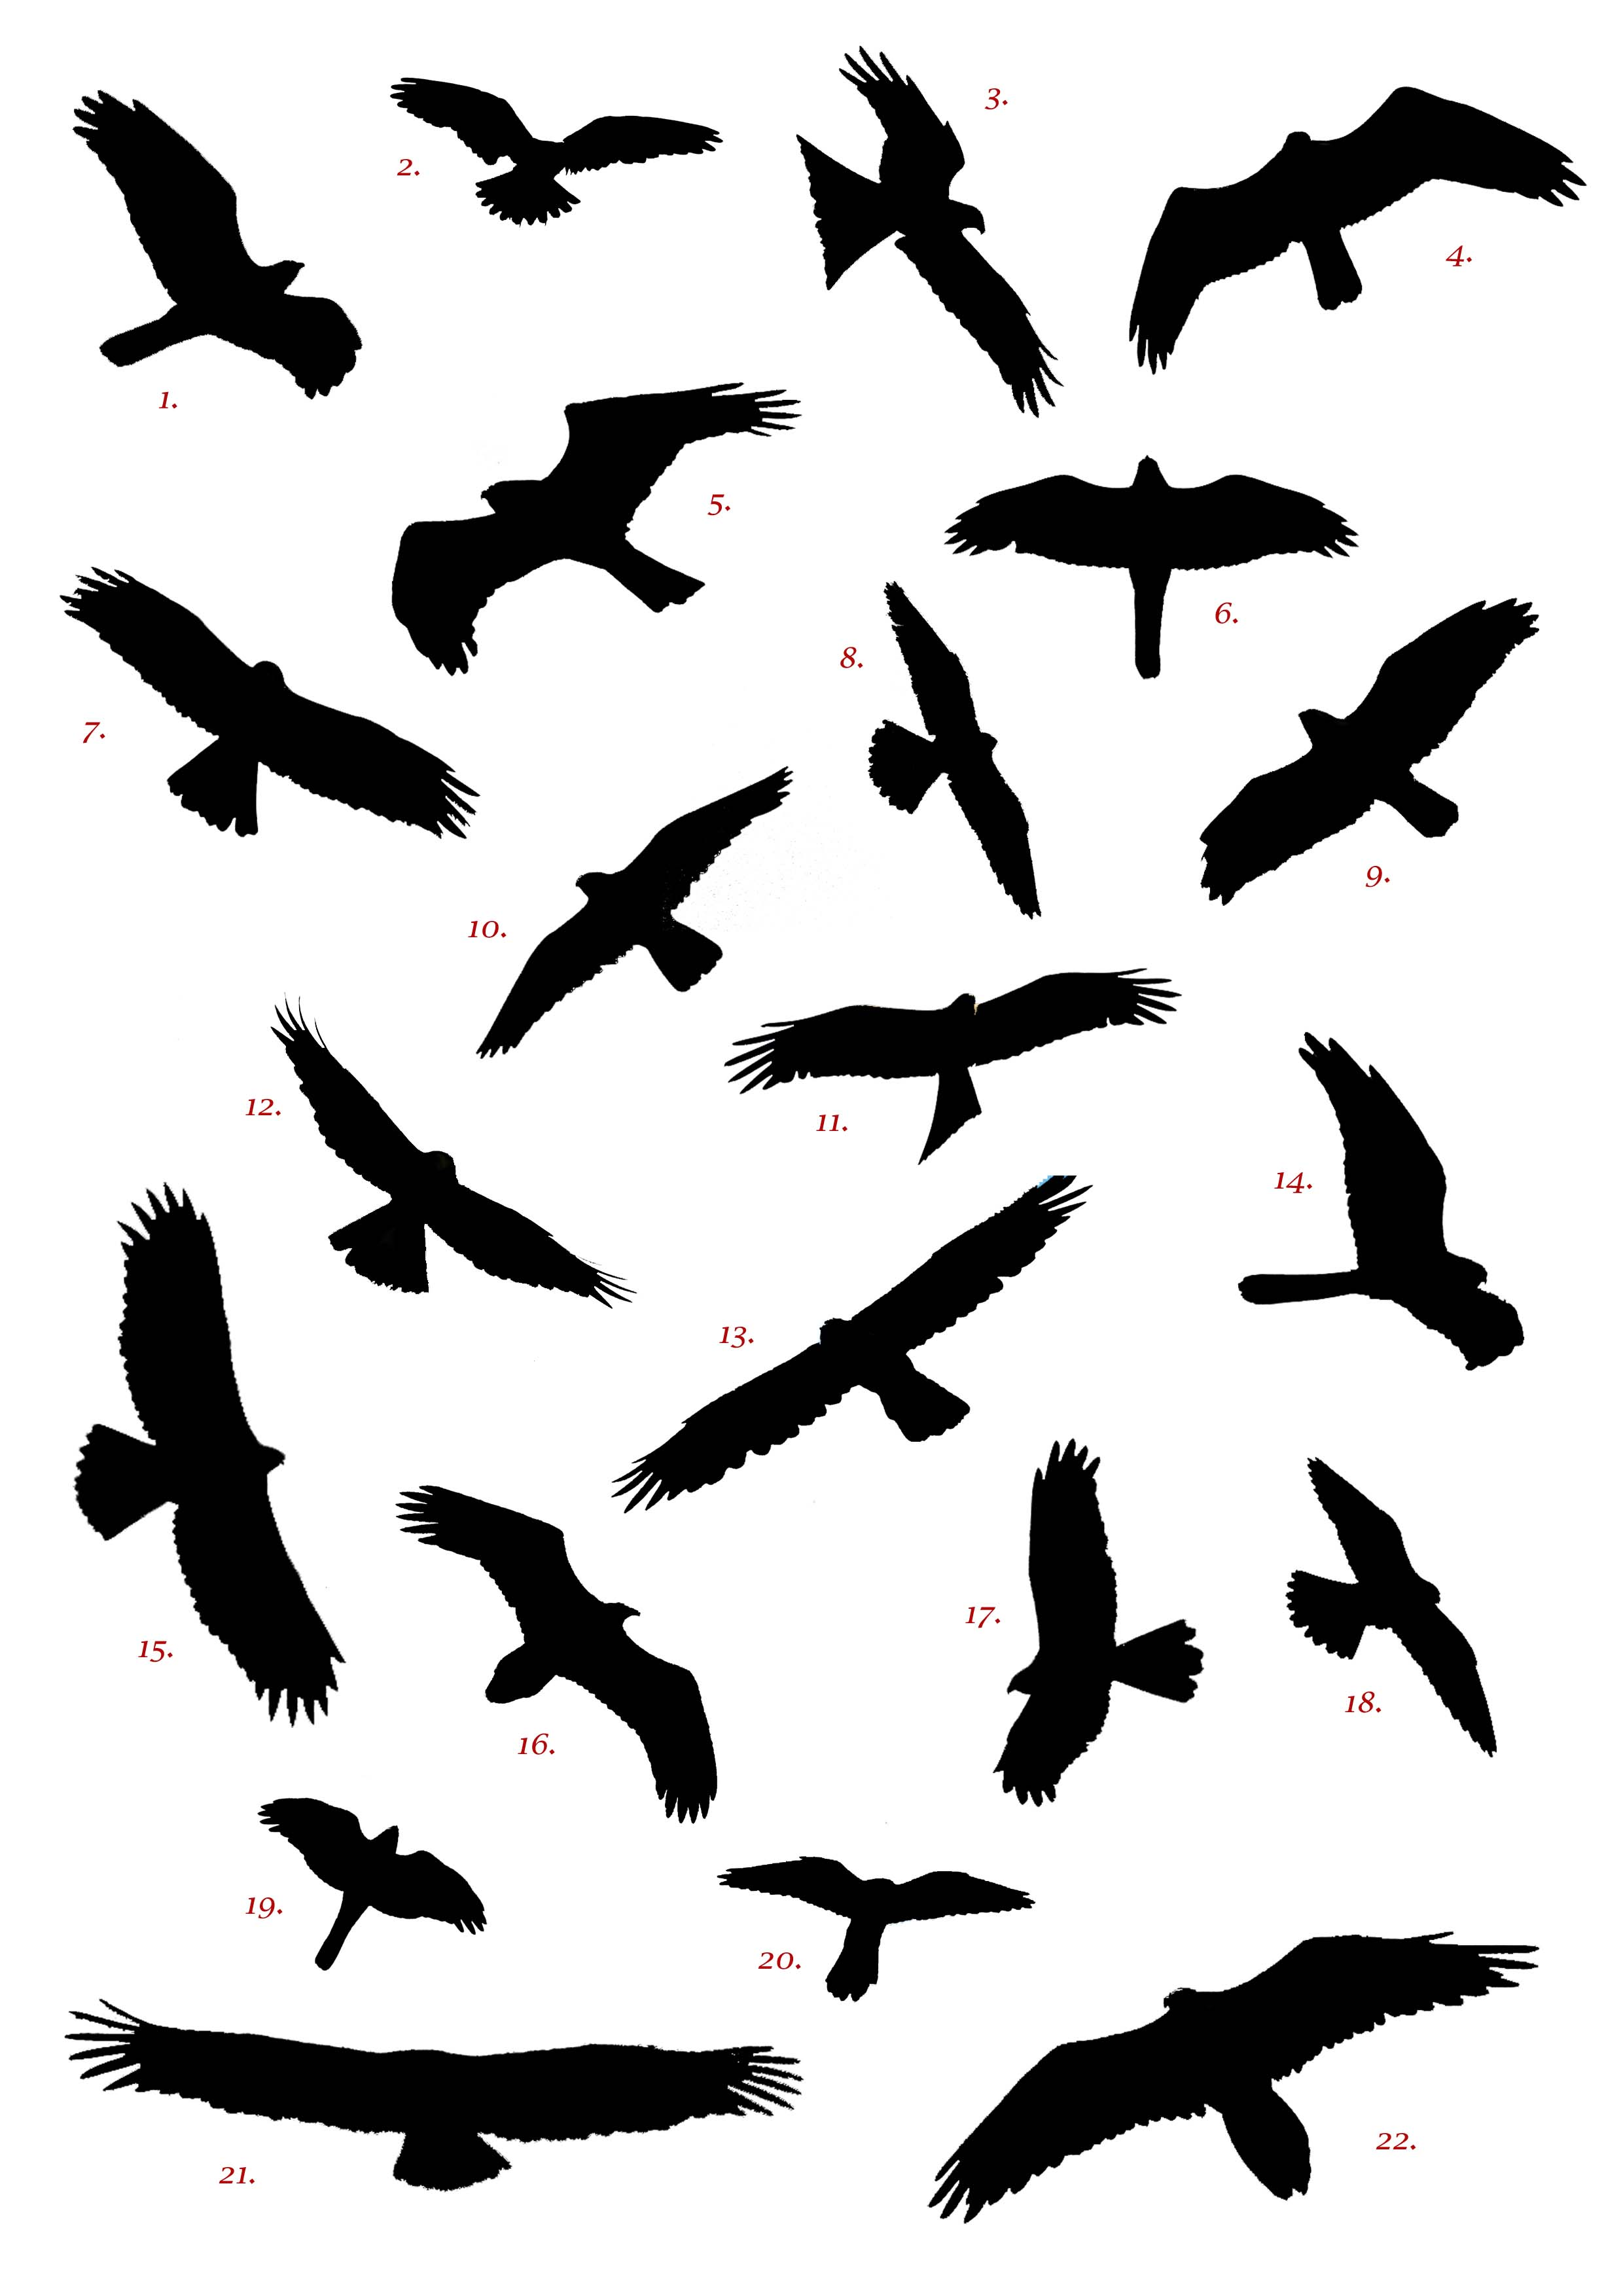 Spanish Raptor Silhouette Competition   Birding In Spain Blog.